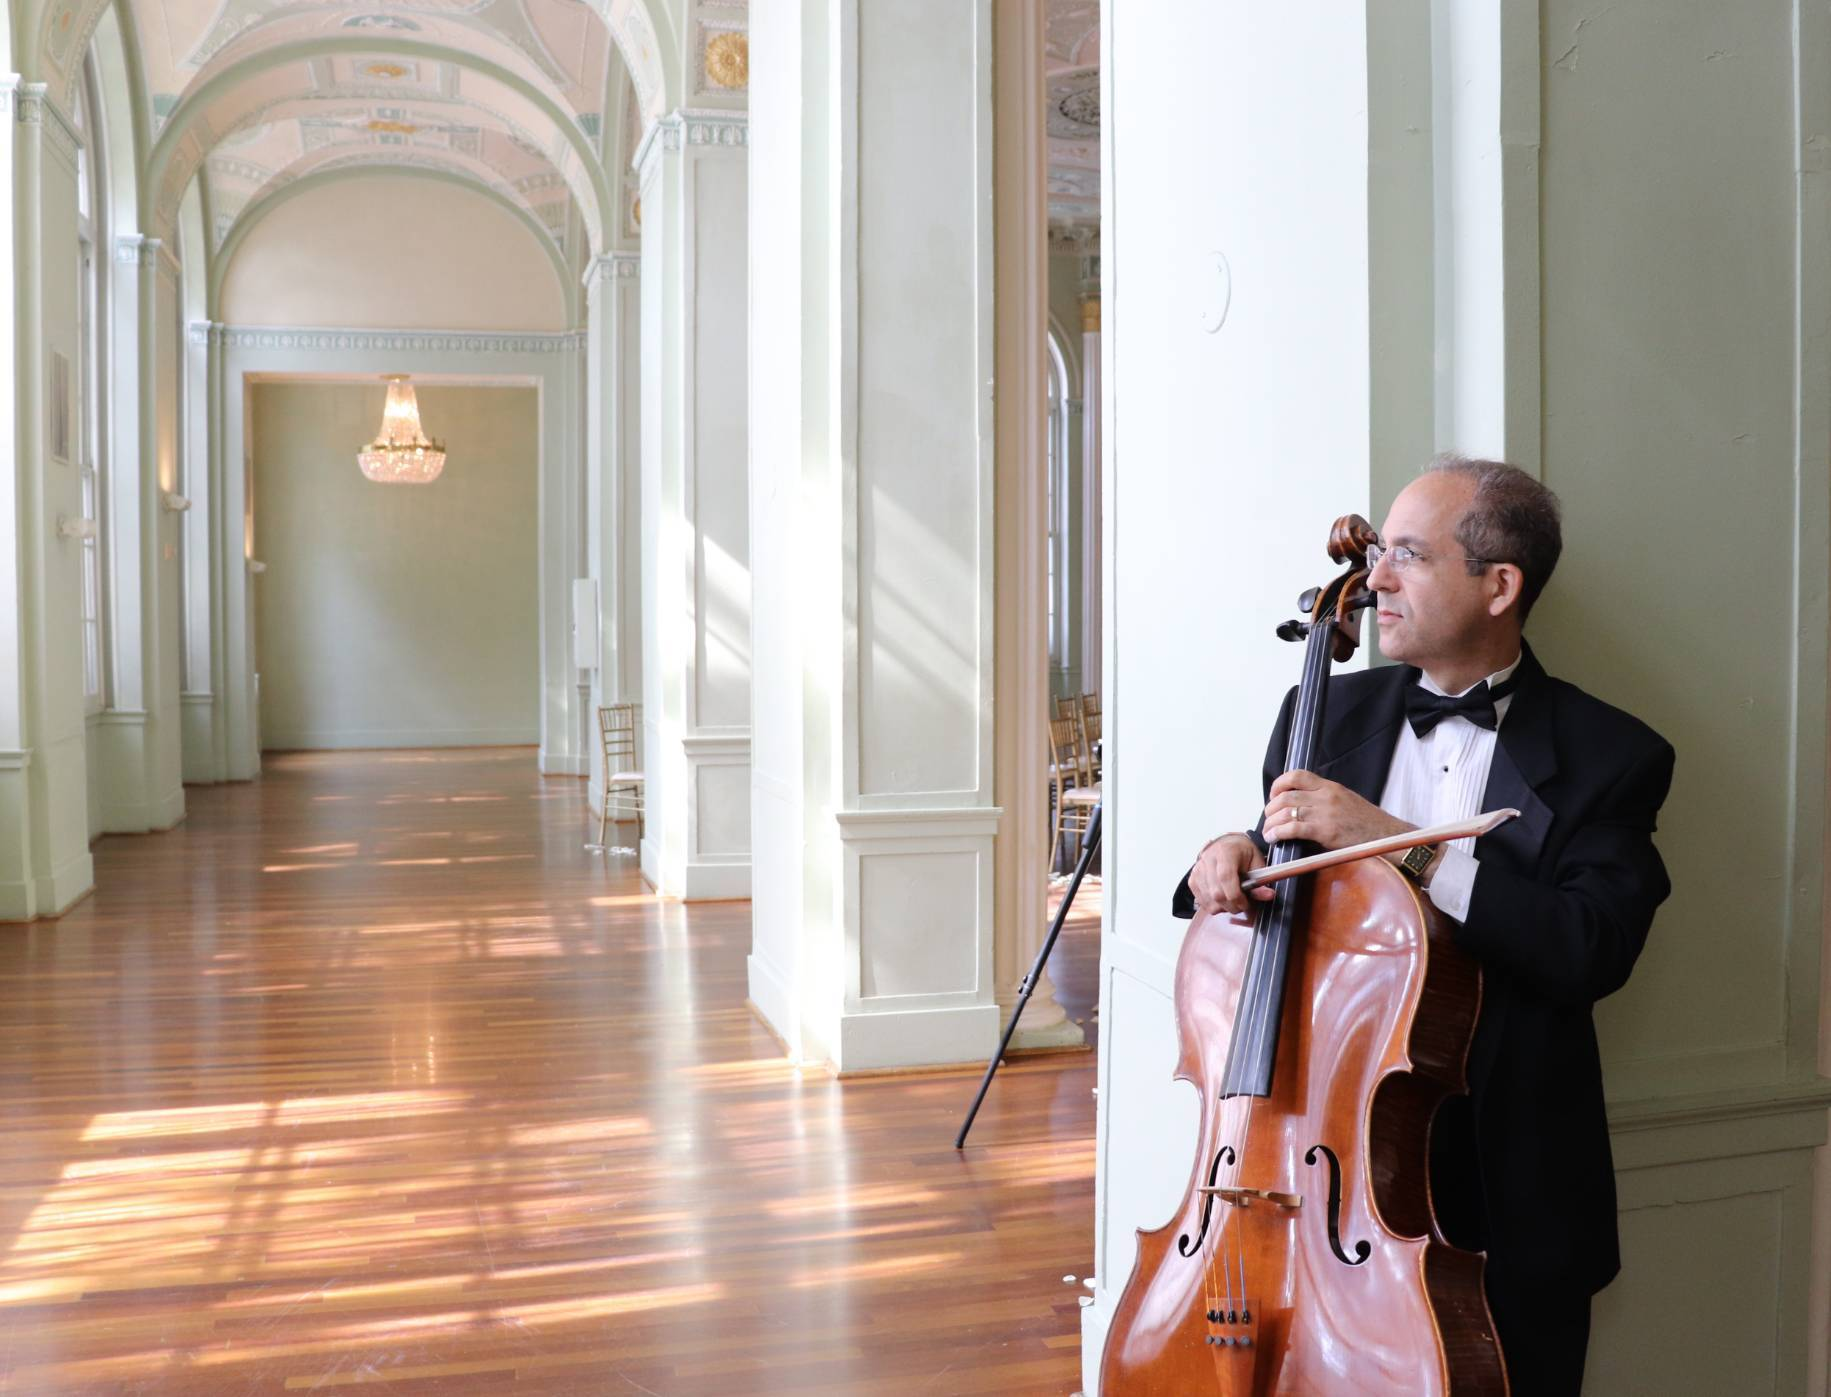 Roy Harran, Cellist